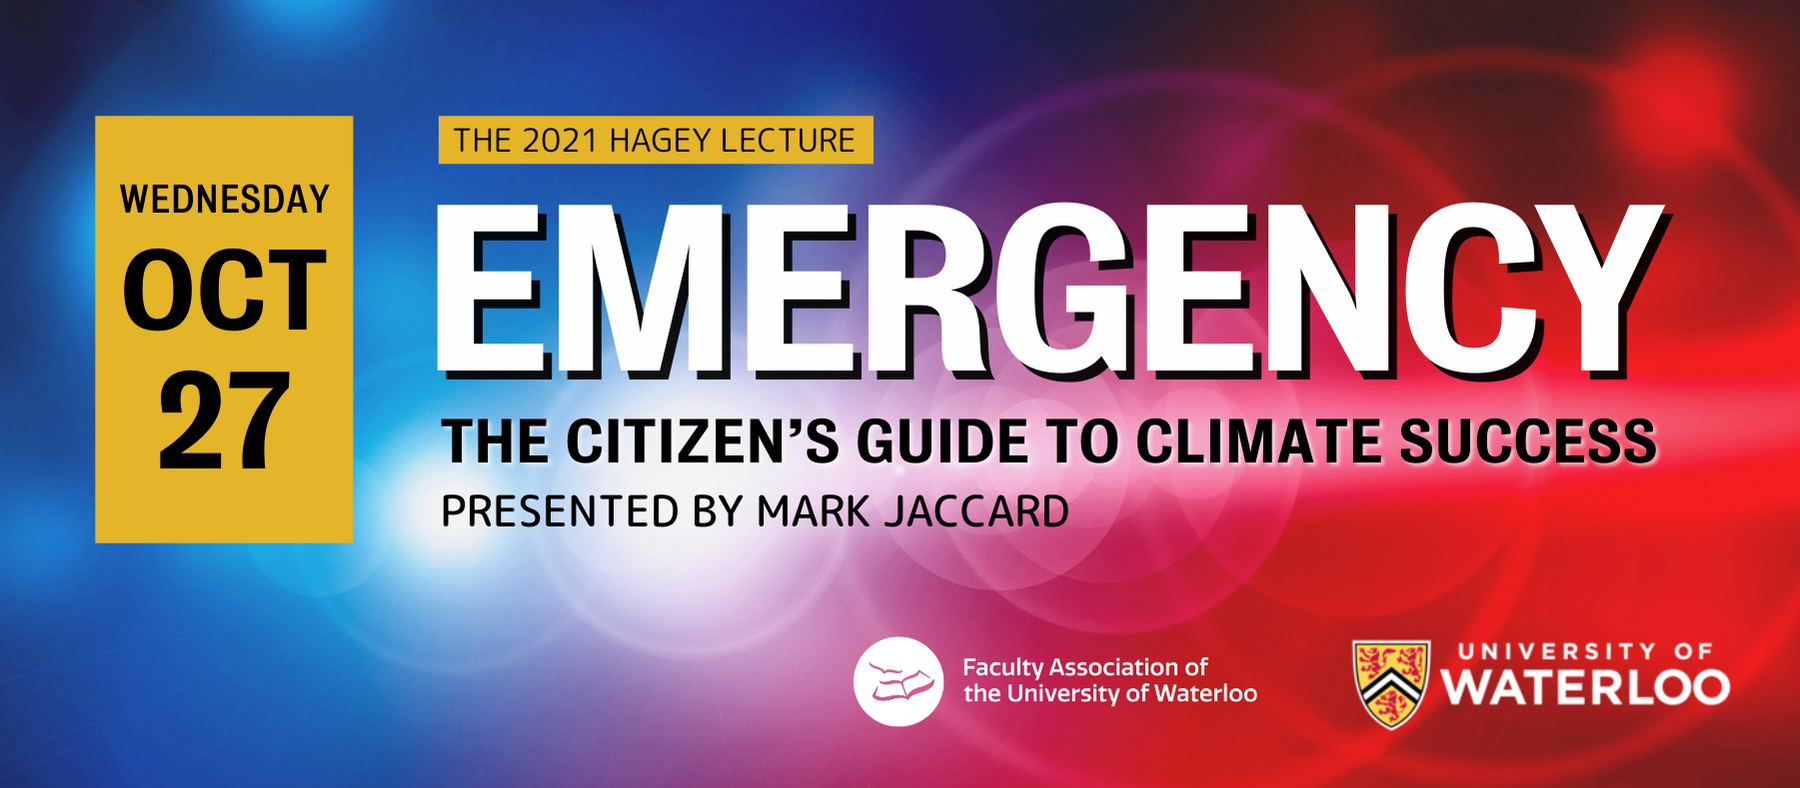 Emergency: The citizen's guide to climate success